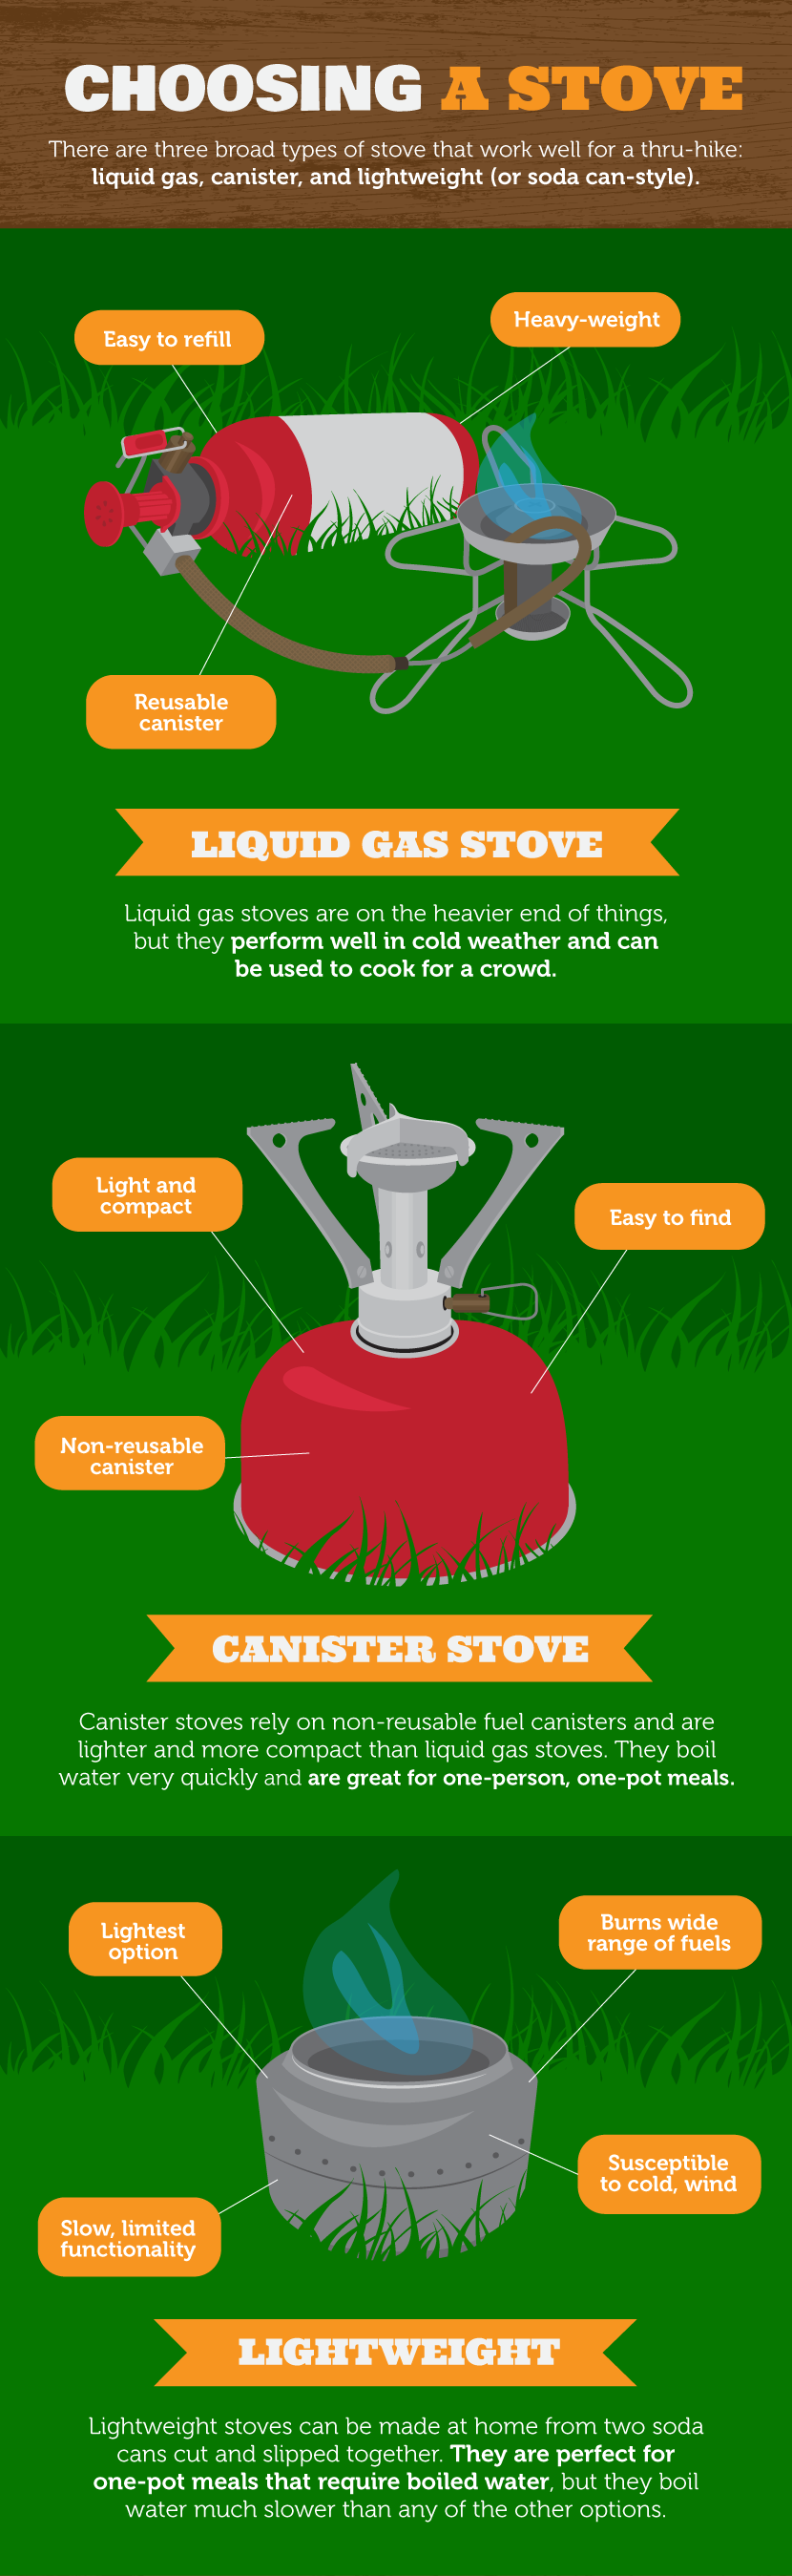 Choosing a Camp Stove - How to Plan For a Thru-Hike